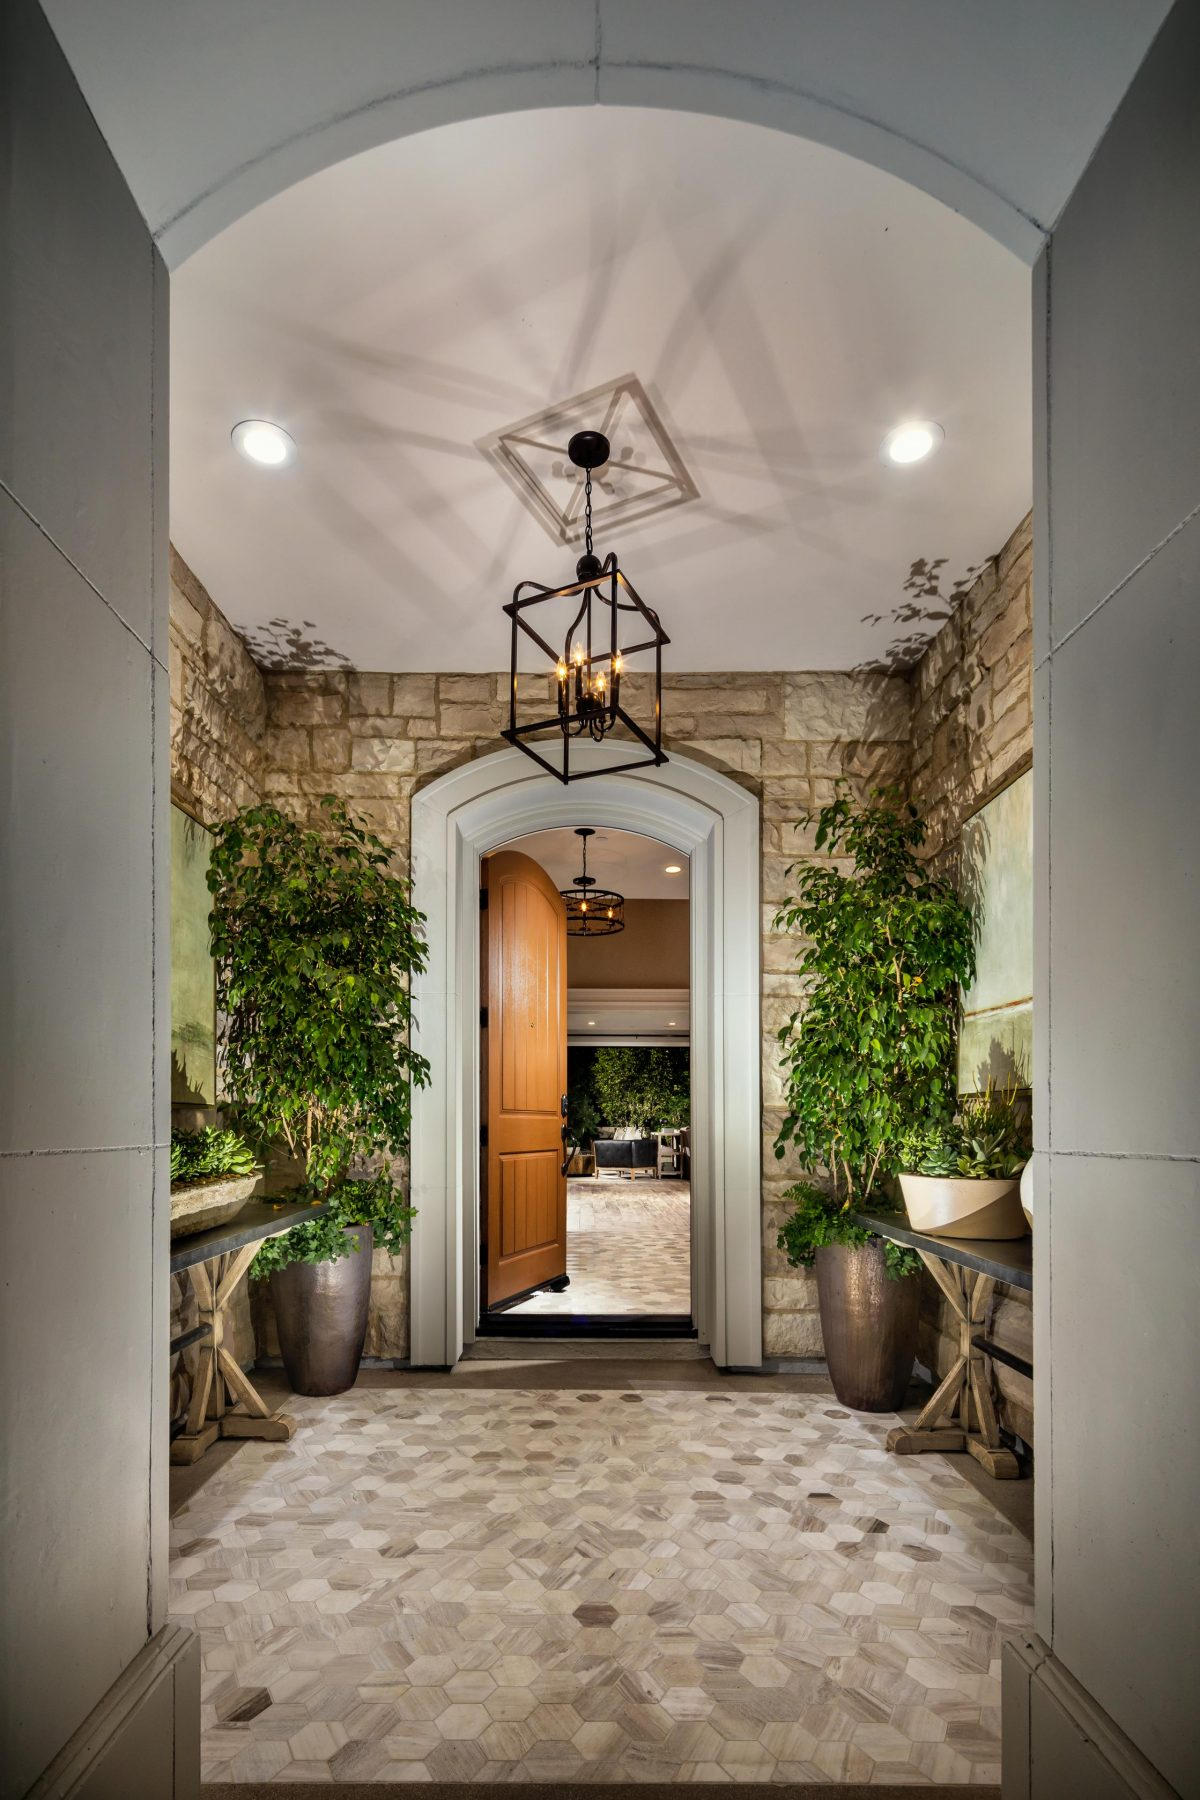 Entryway to a luxury home.